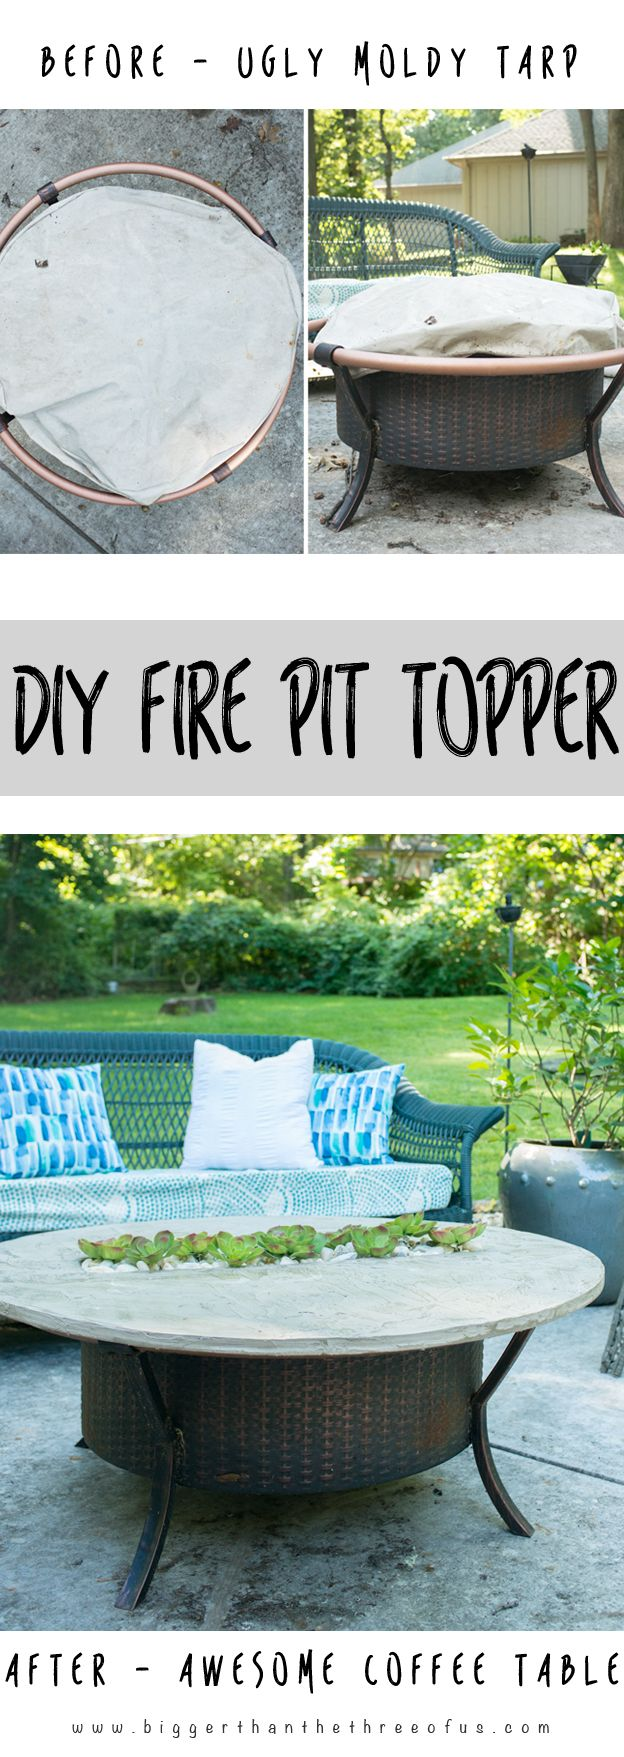 Transform that Fire Pit to an adorable coffee table when it's not in use. Fo...